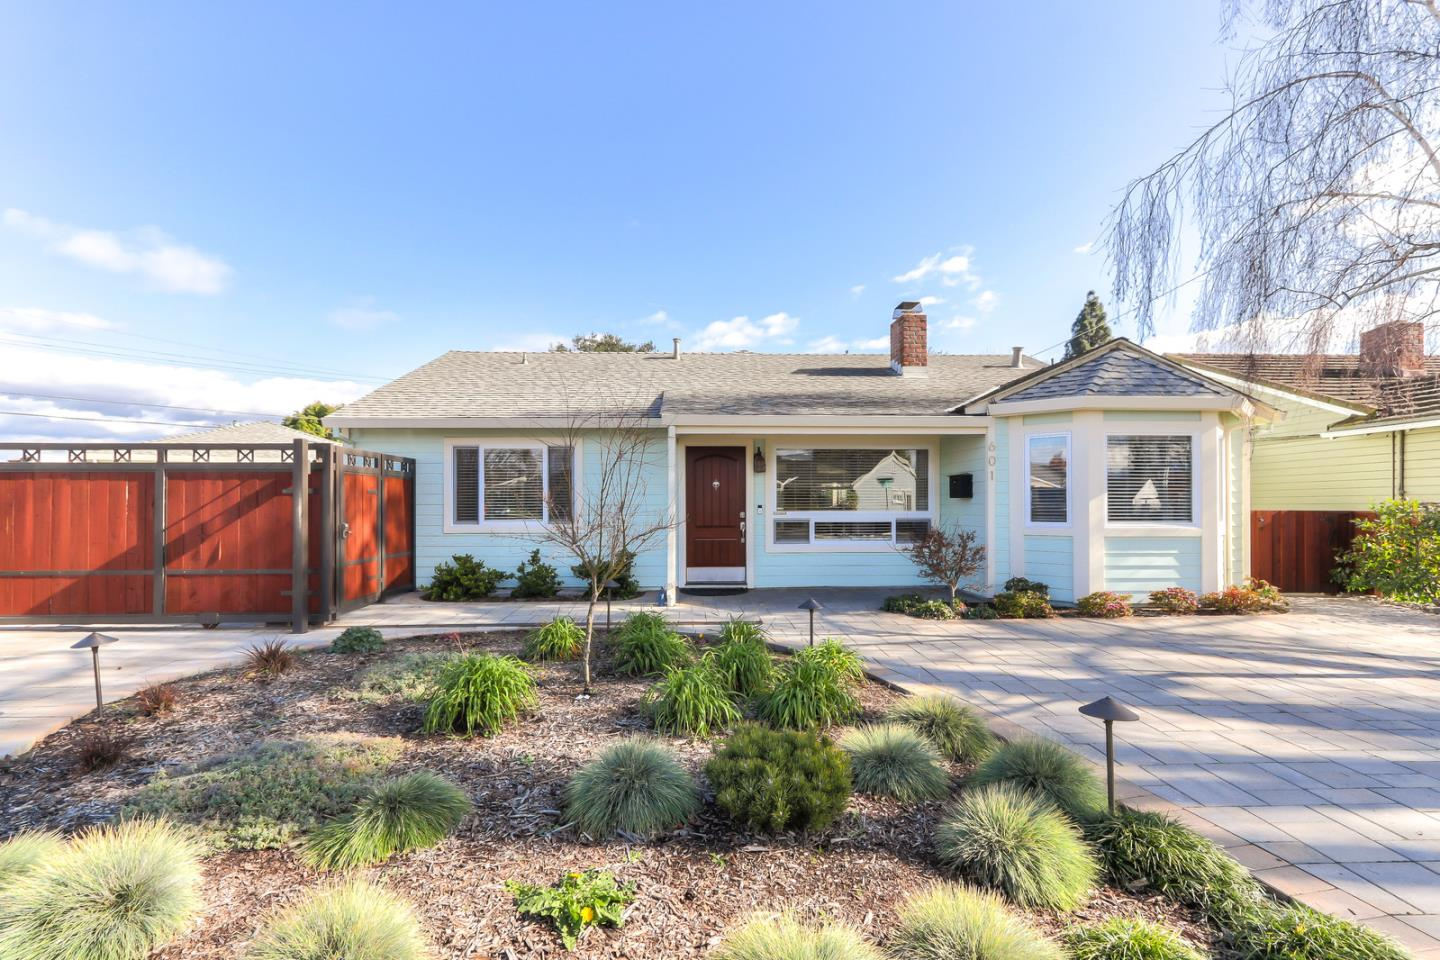 Detail Gallery Image 1 of 1 For 601 Enright Ave, Santa Clara, CA, 95050 - 4 Beds | 2 Baths